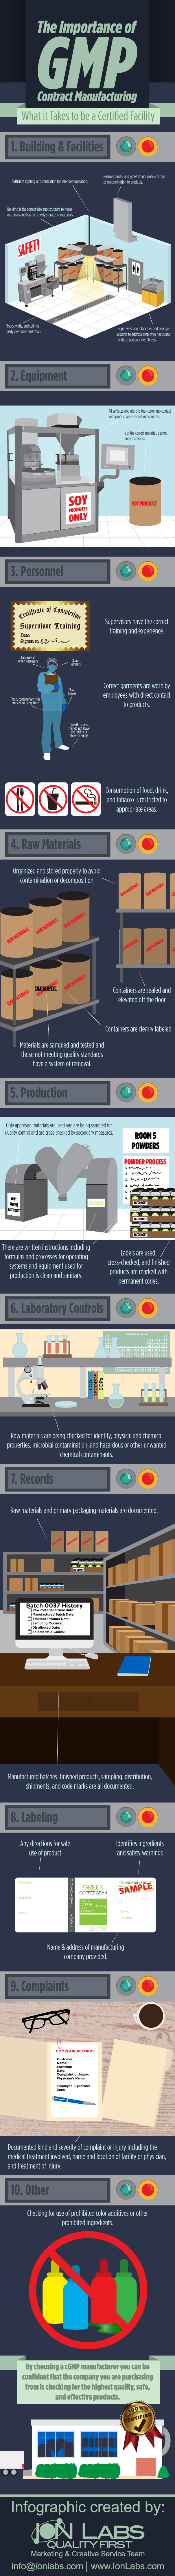 cGMP vs GMP Certification Explained in 2019 [Infographic]